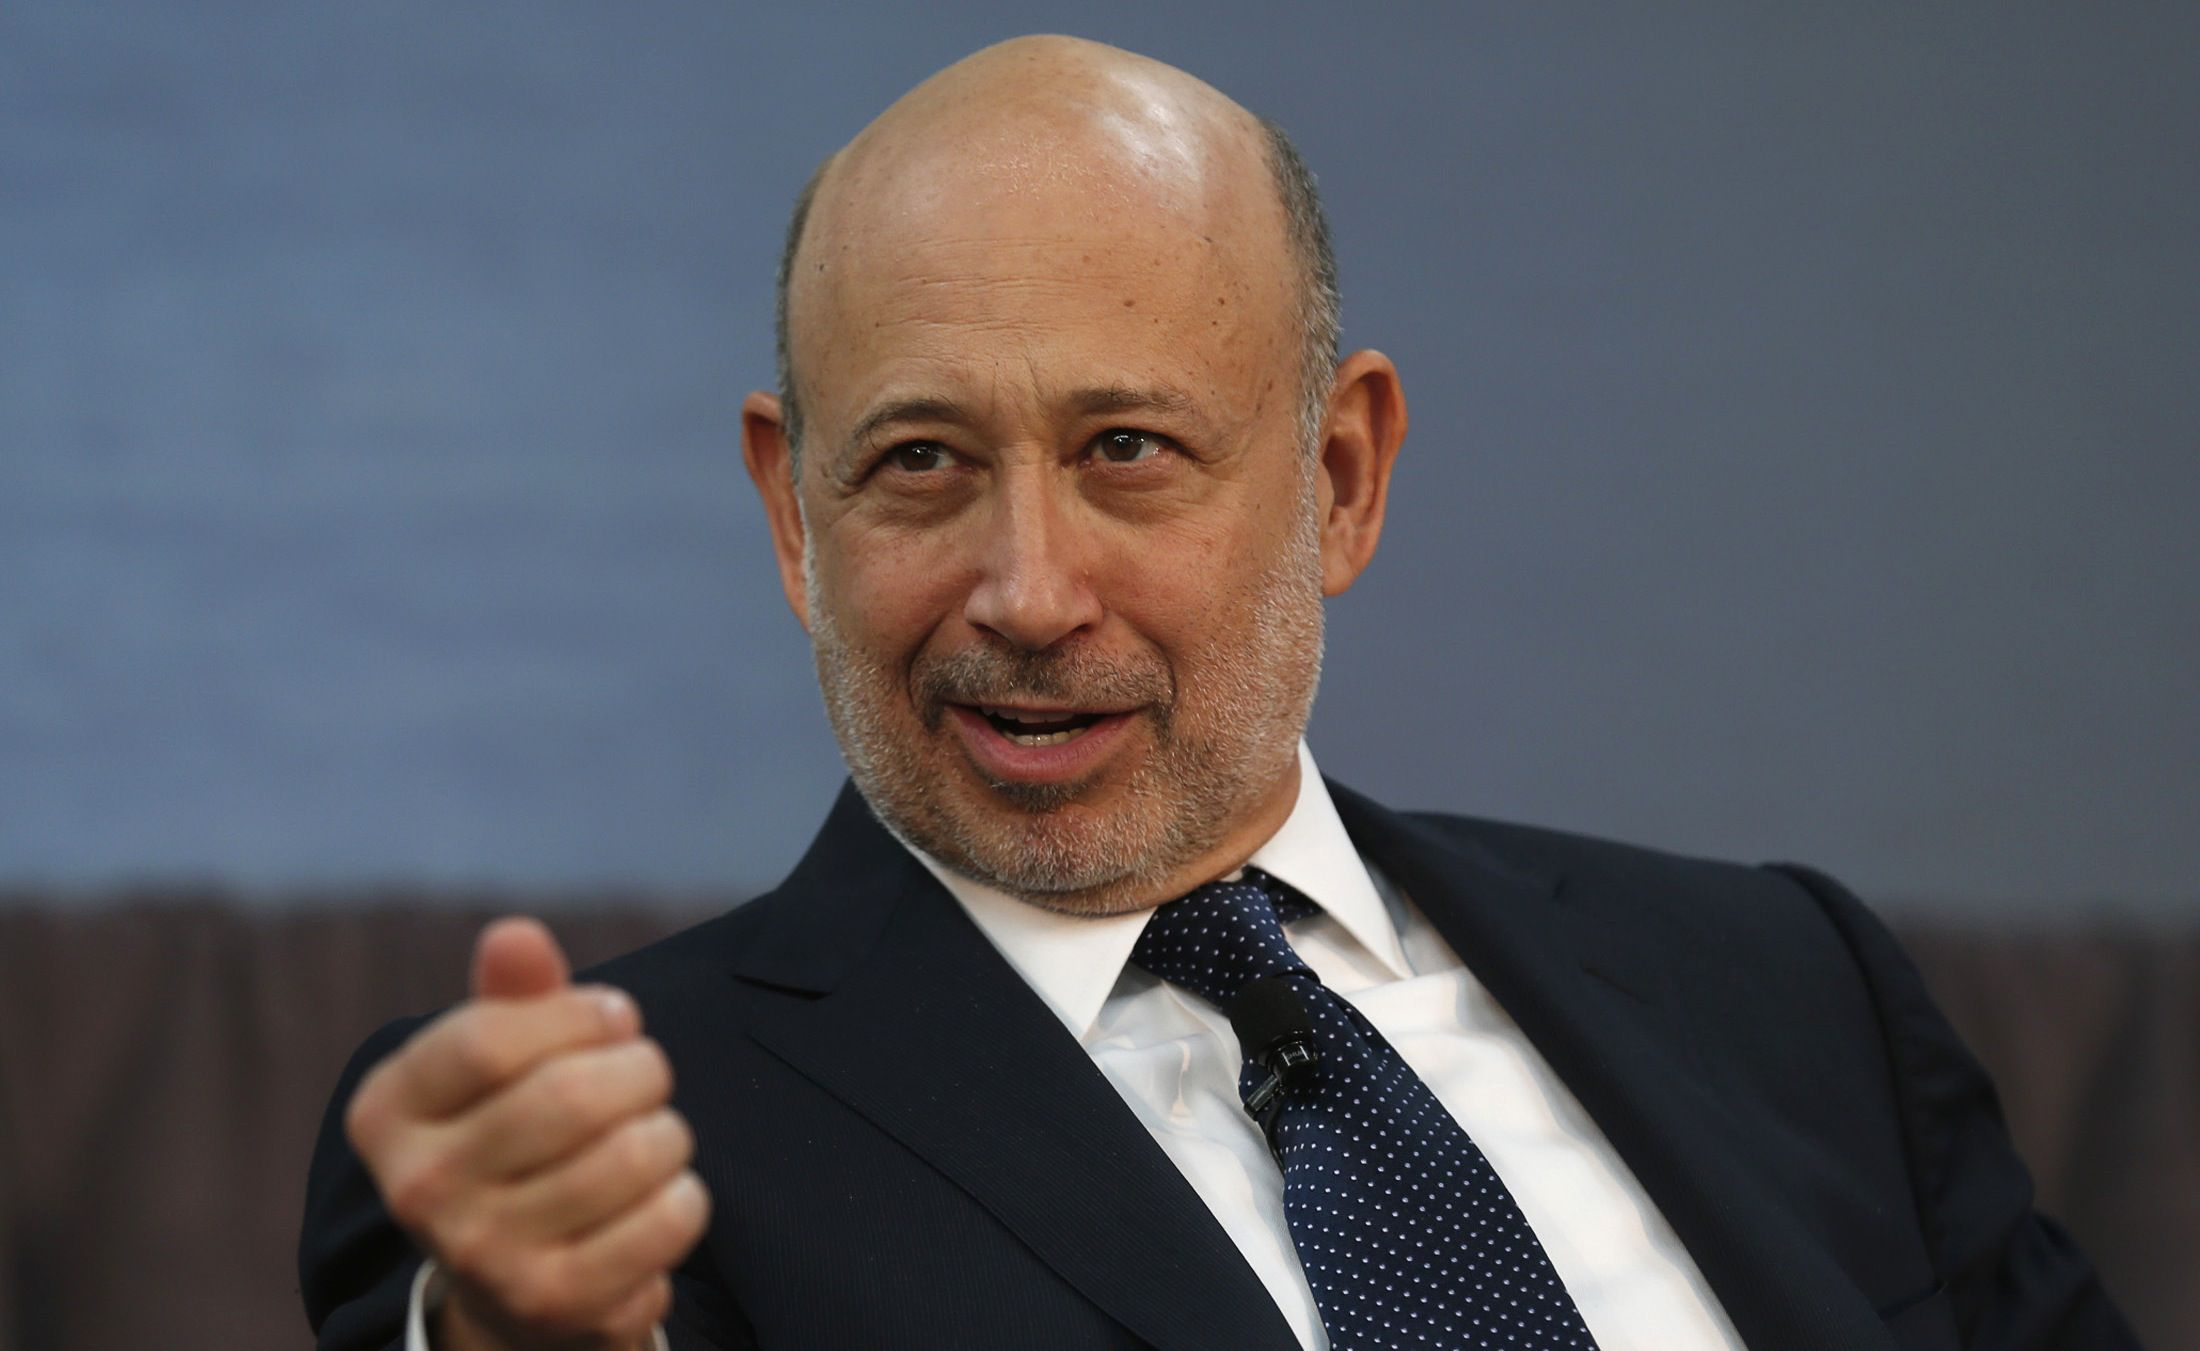 Goldman Sachs CEO Lloyd Blankfein takes part in a panel discussion  following a news conference announcing a $20 million partnership to bring Goldman Sachs' 10,000 Small Businesses initiative to the city of Detroit, Michigan November 26, 2013. REUTERS/Rebecca Cook (UNITED STATES - Tags: BUSINESS EMPLOYMENT) - RTX15U4J